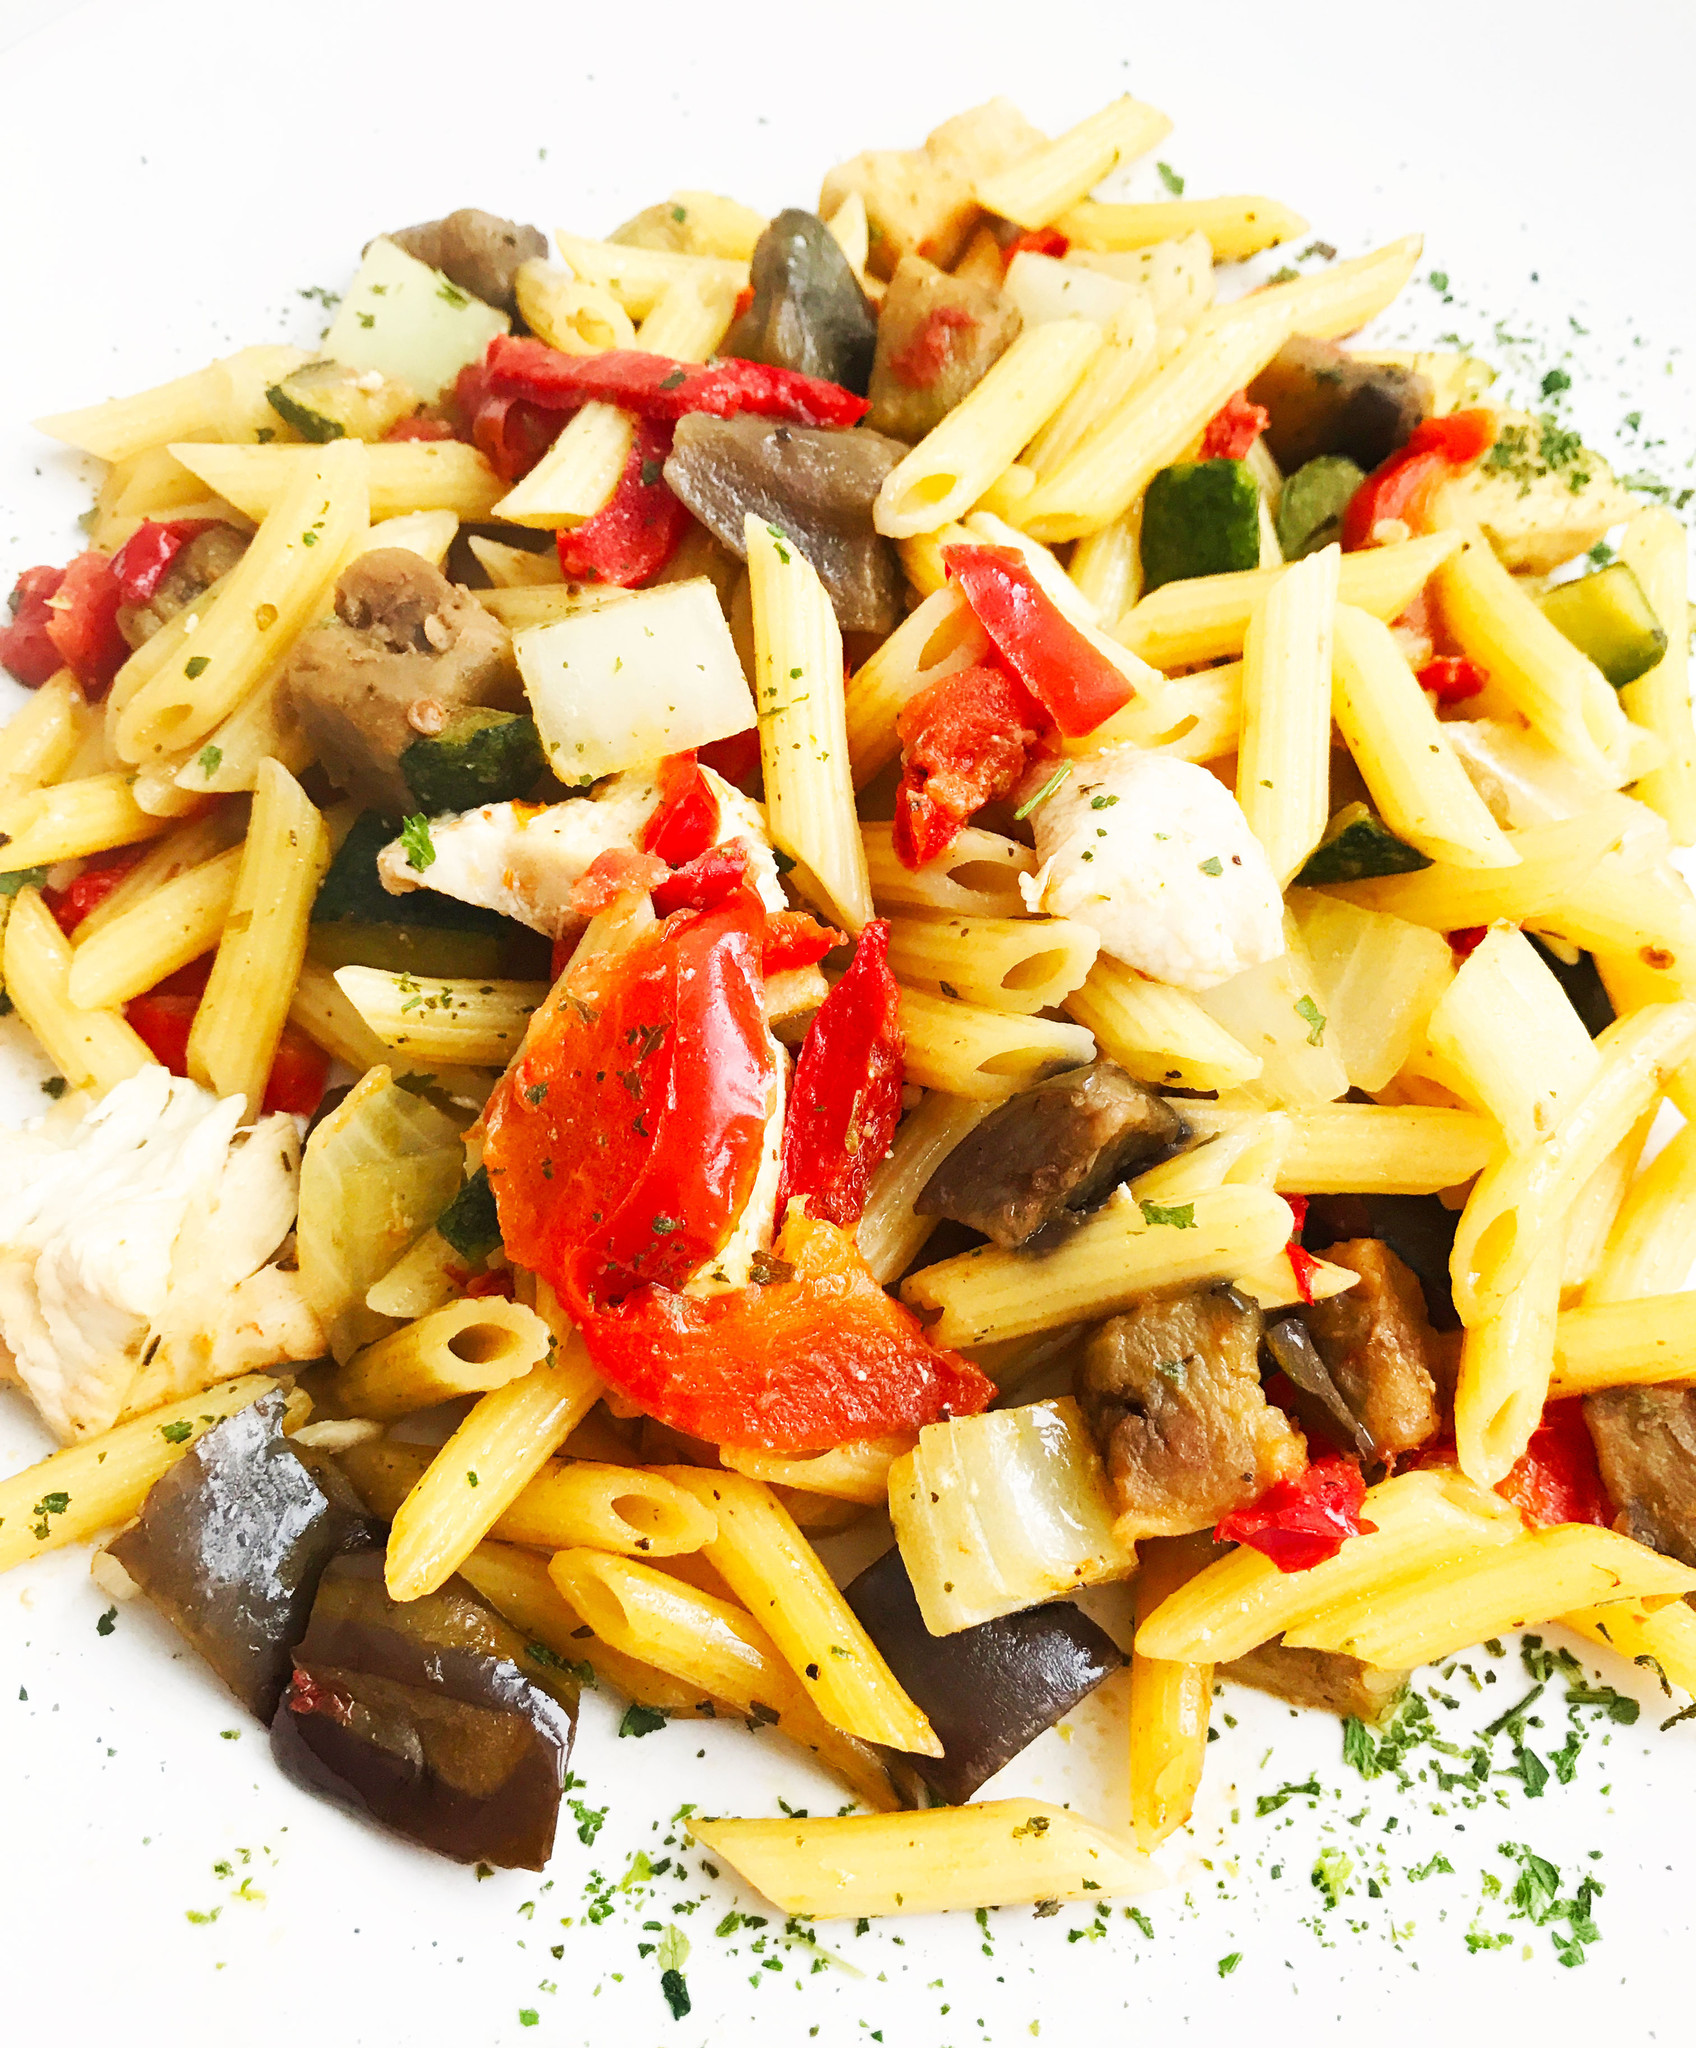 Pennette with ratatouille & poultry (325g)